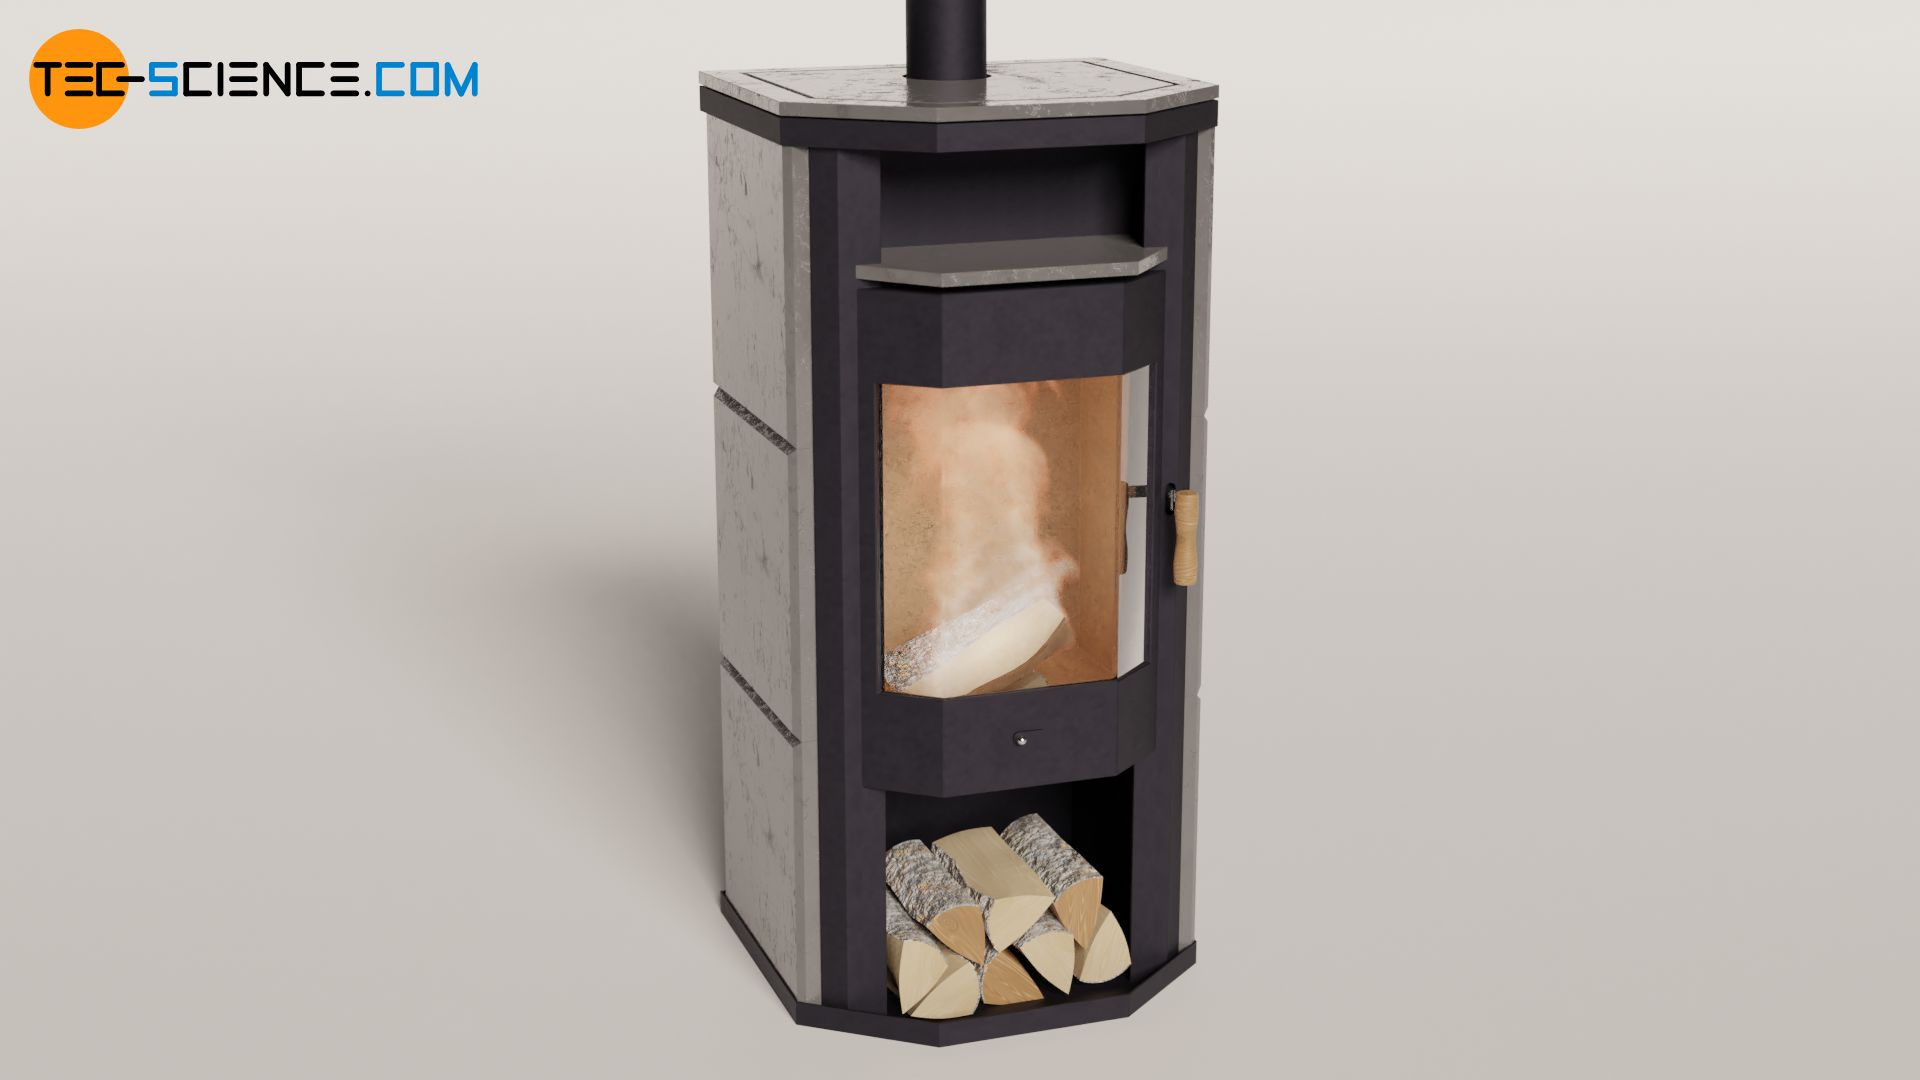 Heat capacity of a stove made of different materials